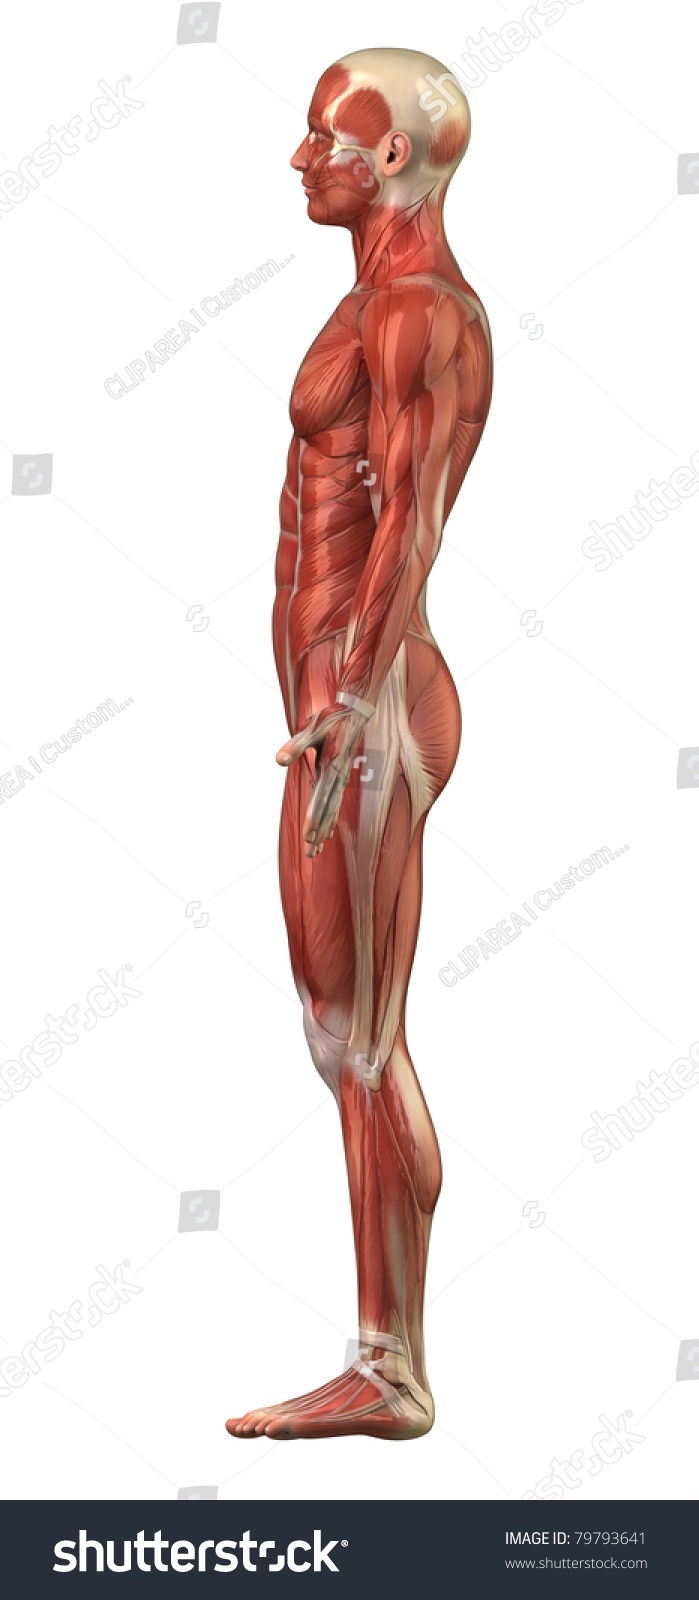 Anatomy Man Muscular System Lateral View Stock Illustration 79793641